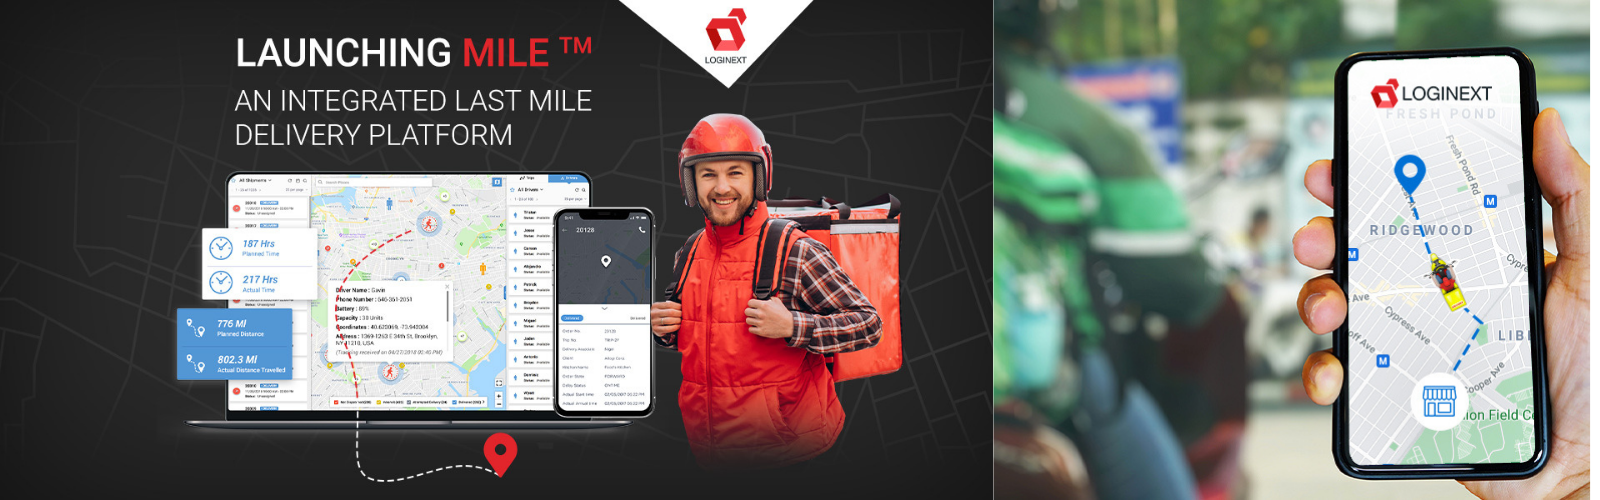 LogiNext launches MILE: America's first integrated last mile delivery platform